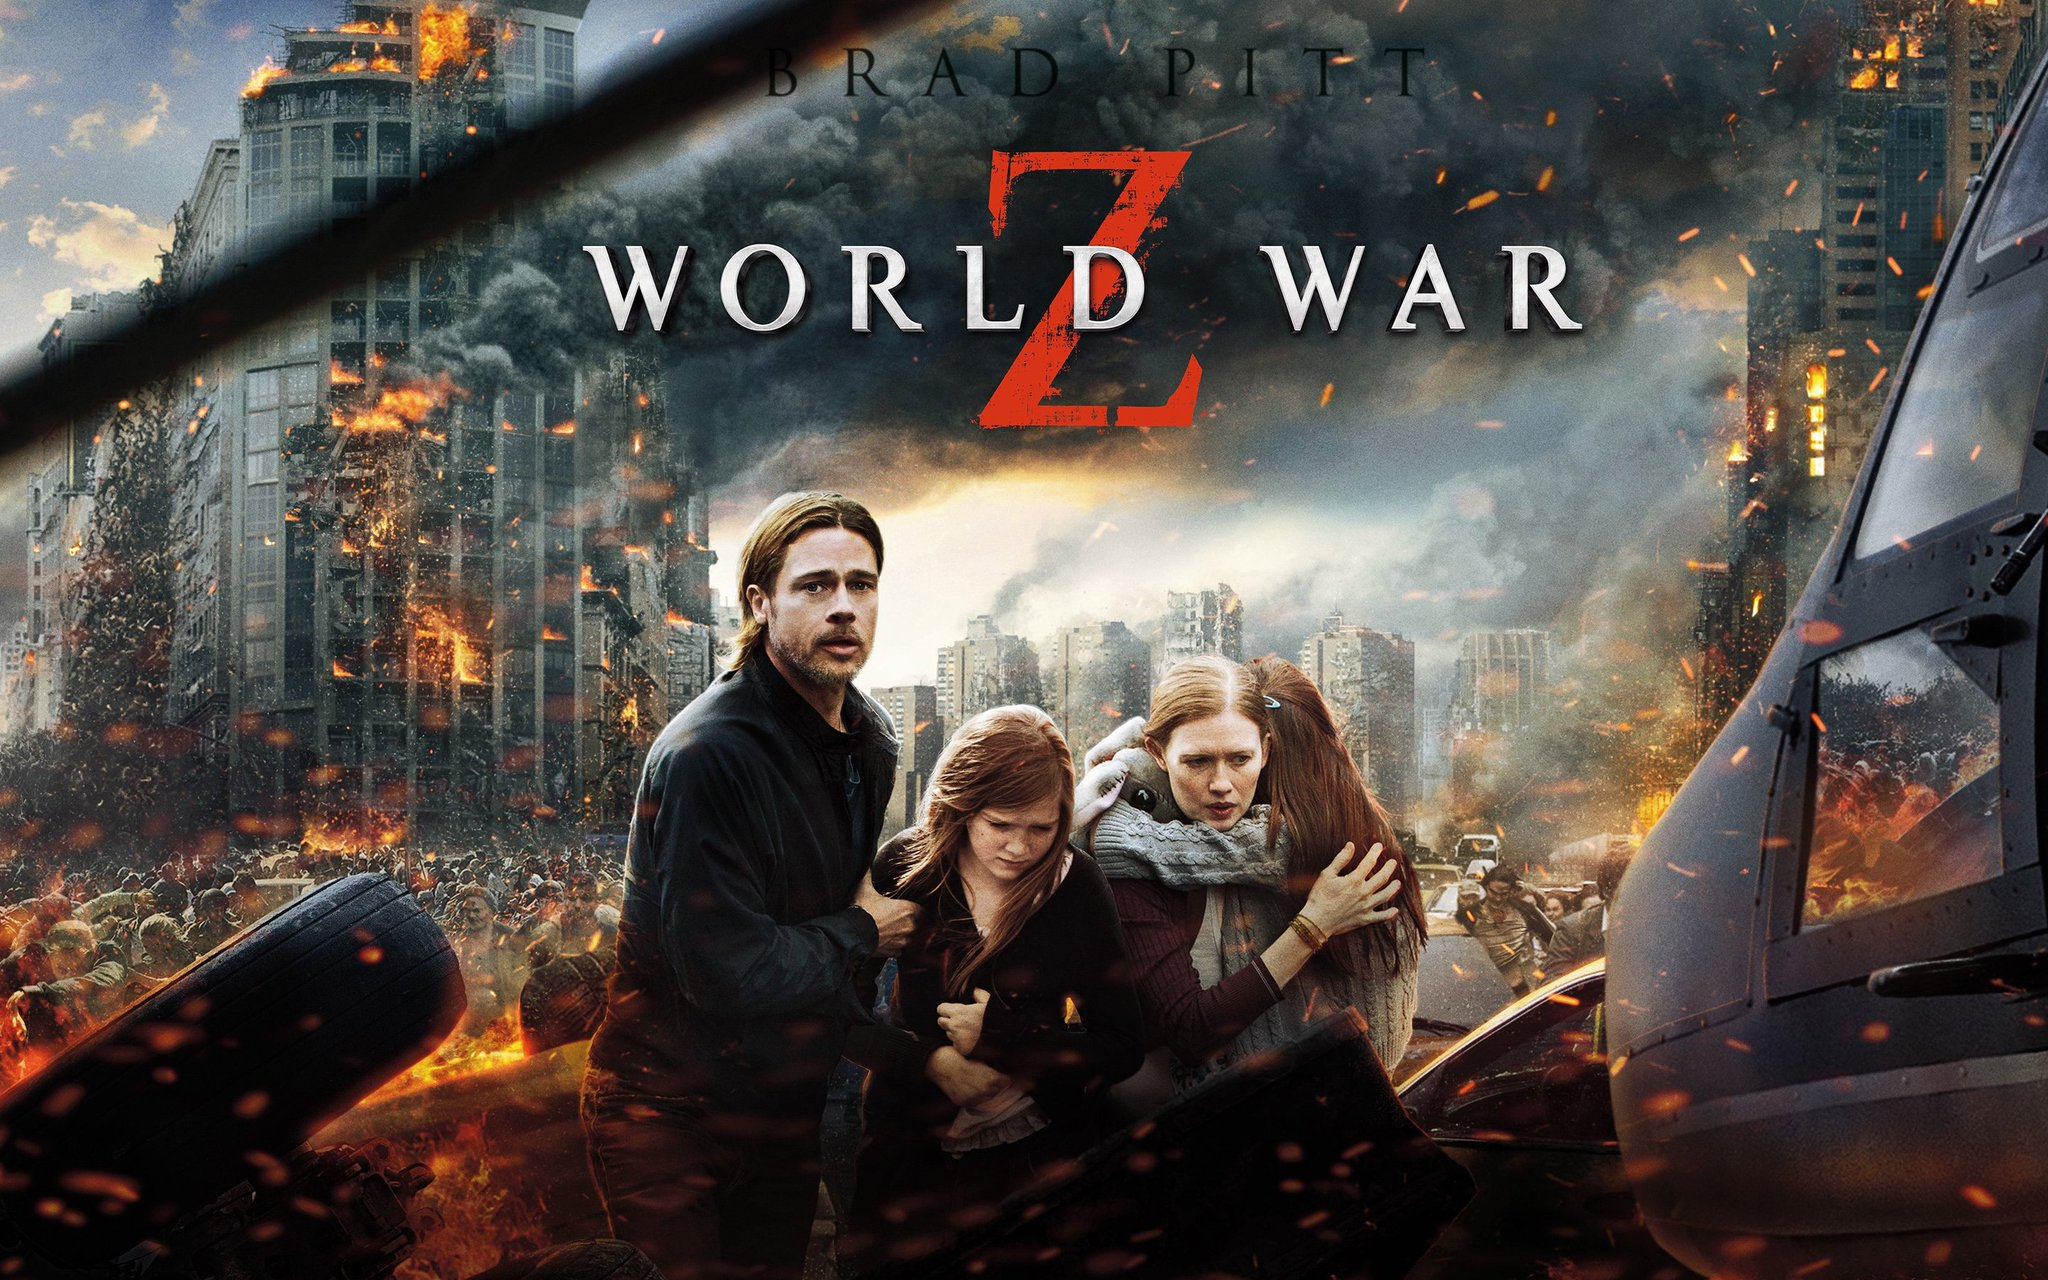 Файлы для игры World War Z